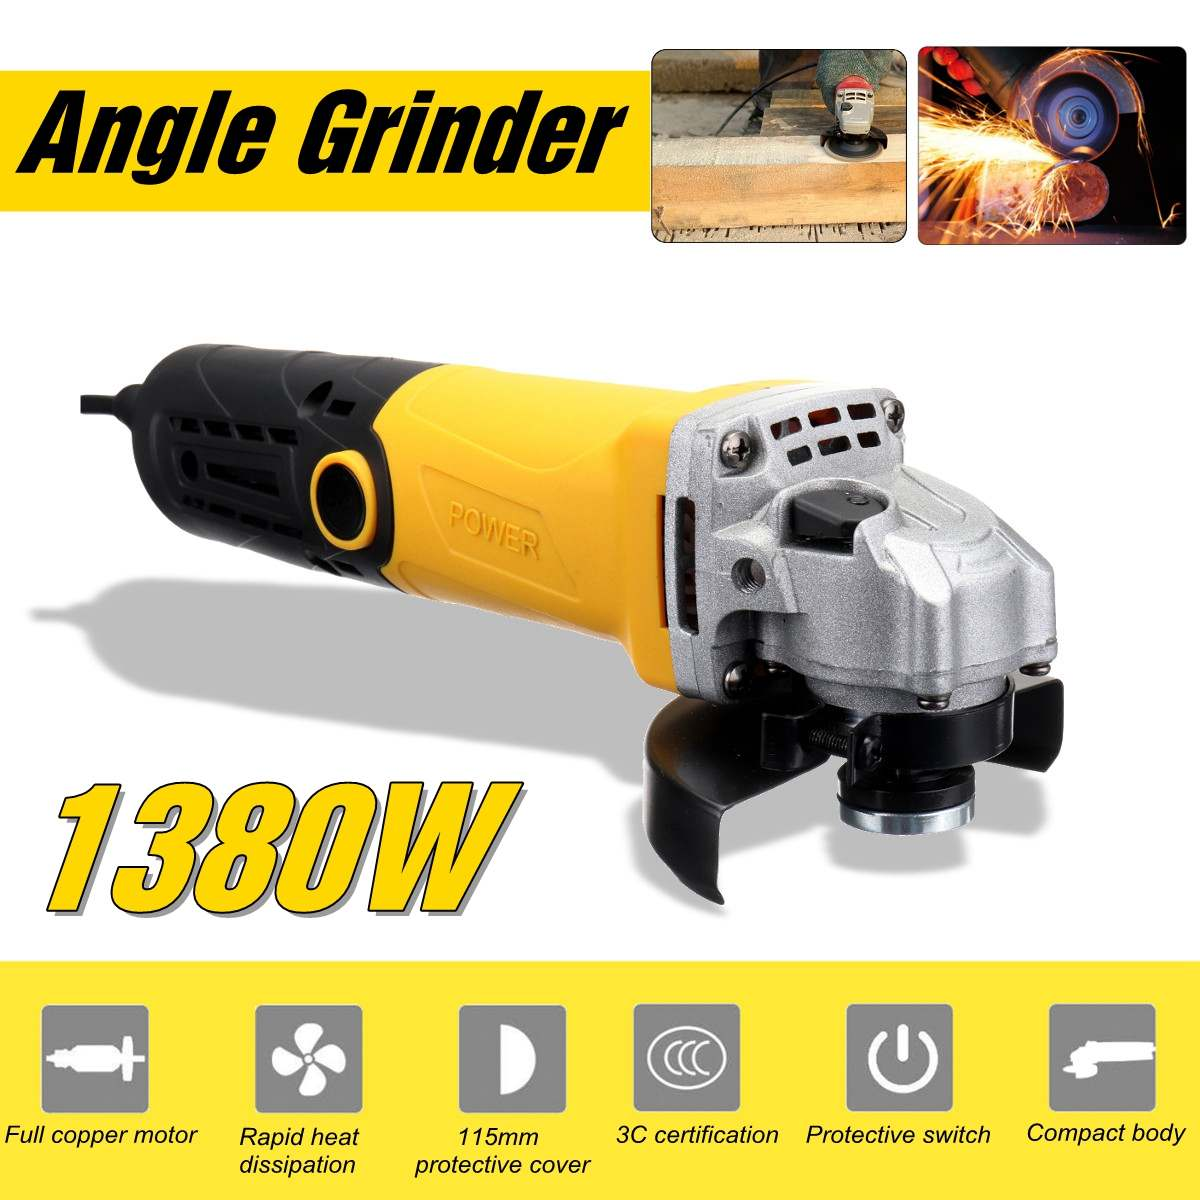 1380W 11000r/min Angle Grinder Electric Woodworking Grinding Grinder Machine Variable Speed Cutting Woodworking Tool